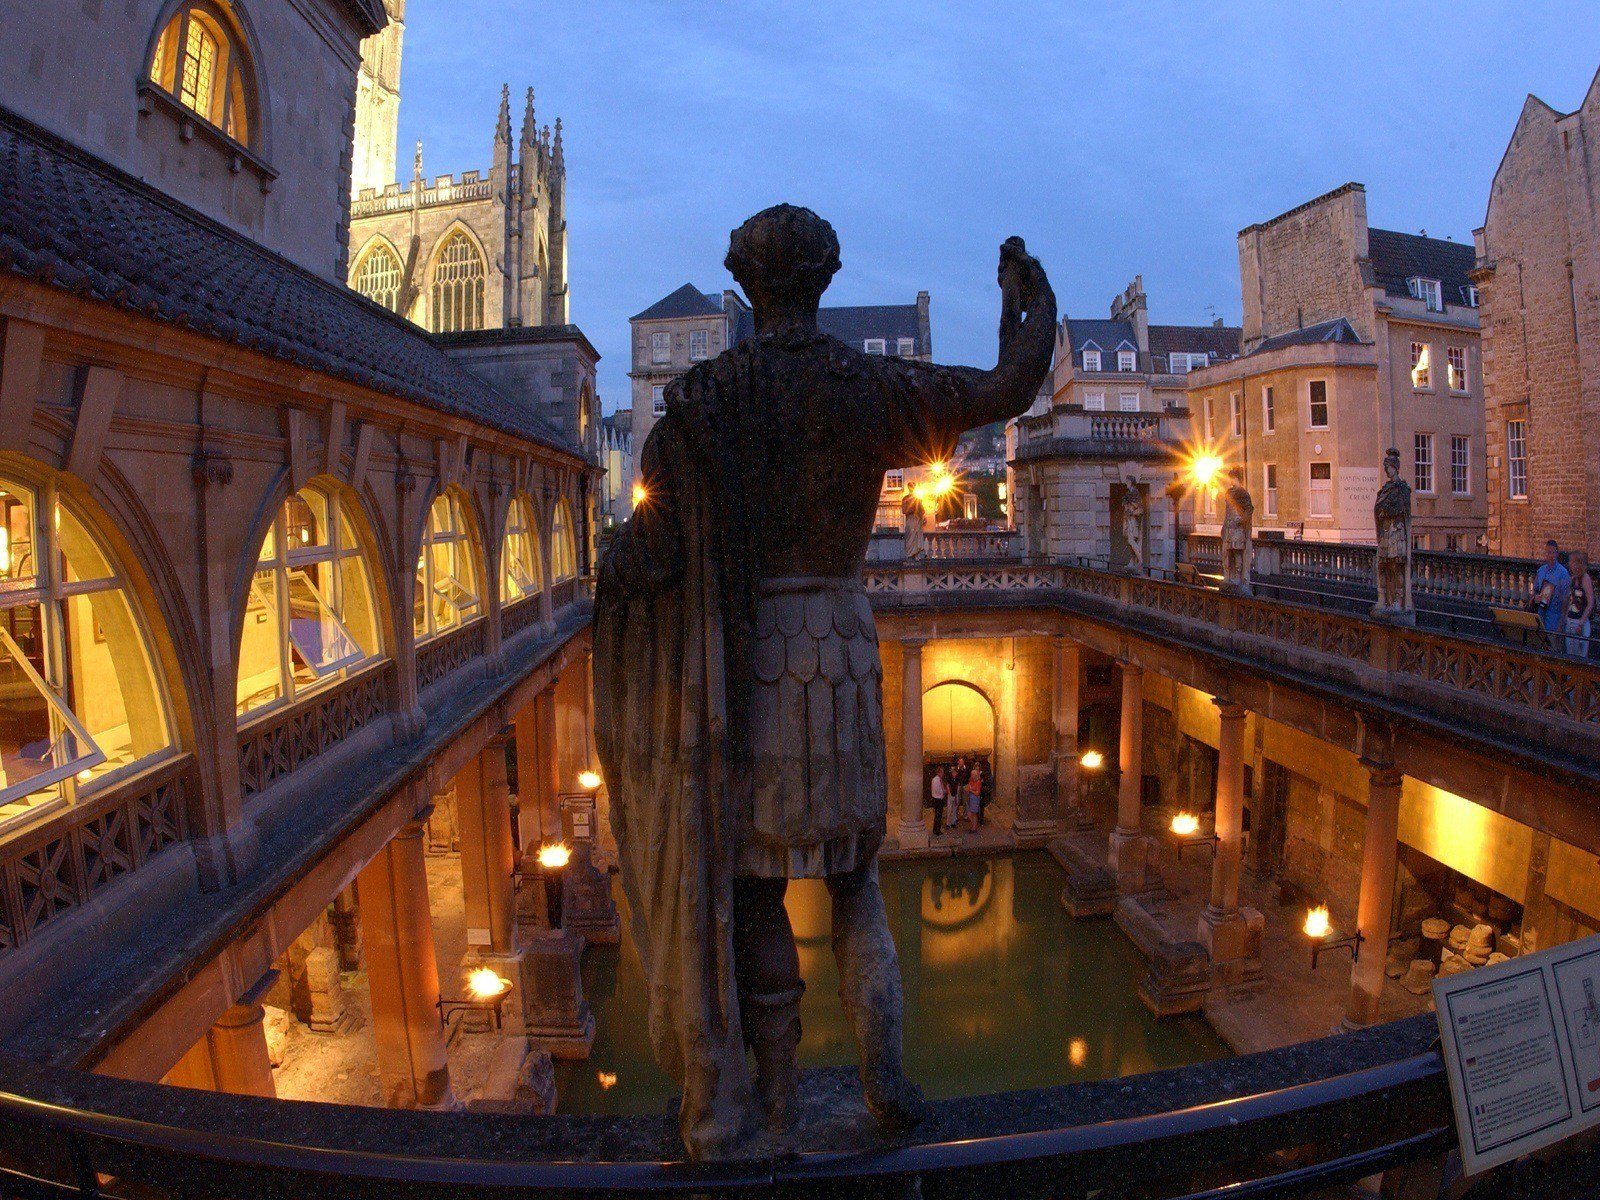 Hire The Unique Roman Baths For Weddings And Drinks